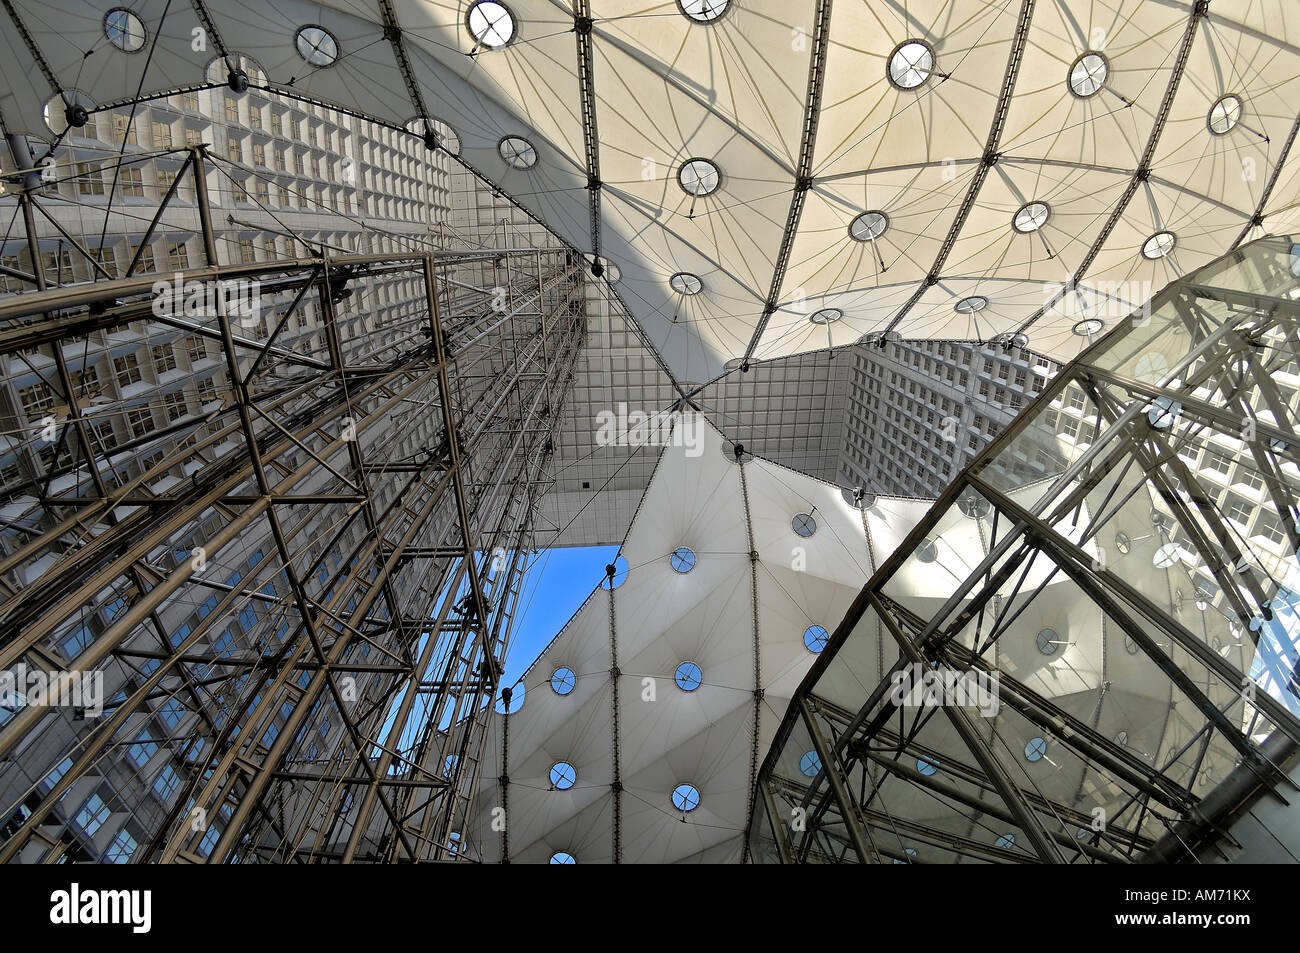 The Grande Arche at La Defense, seen from within the Arch, Paris - Stock Image